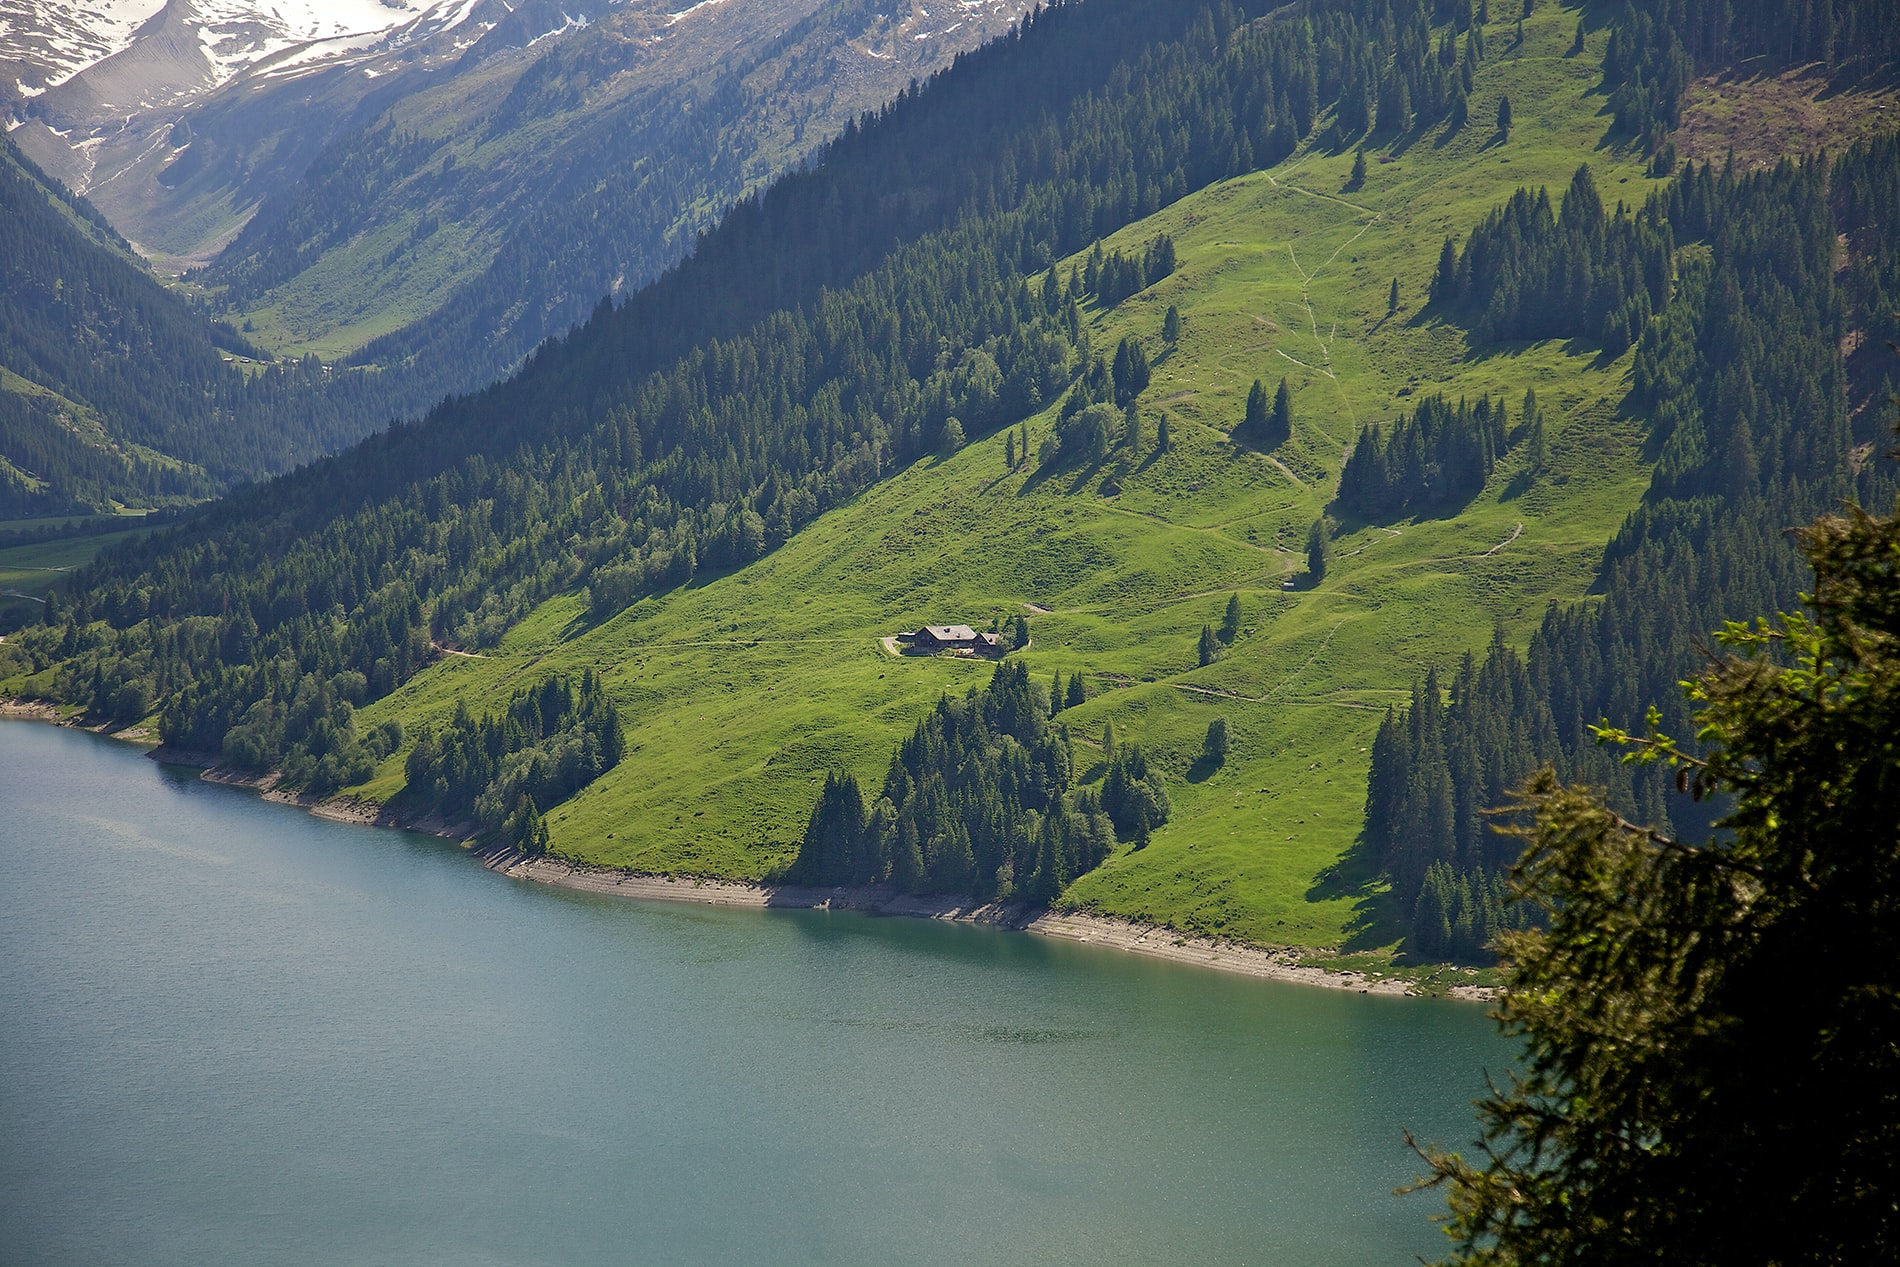 Small buildings on a green slope over a mountain lake